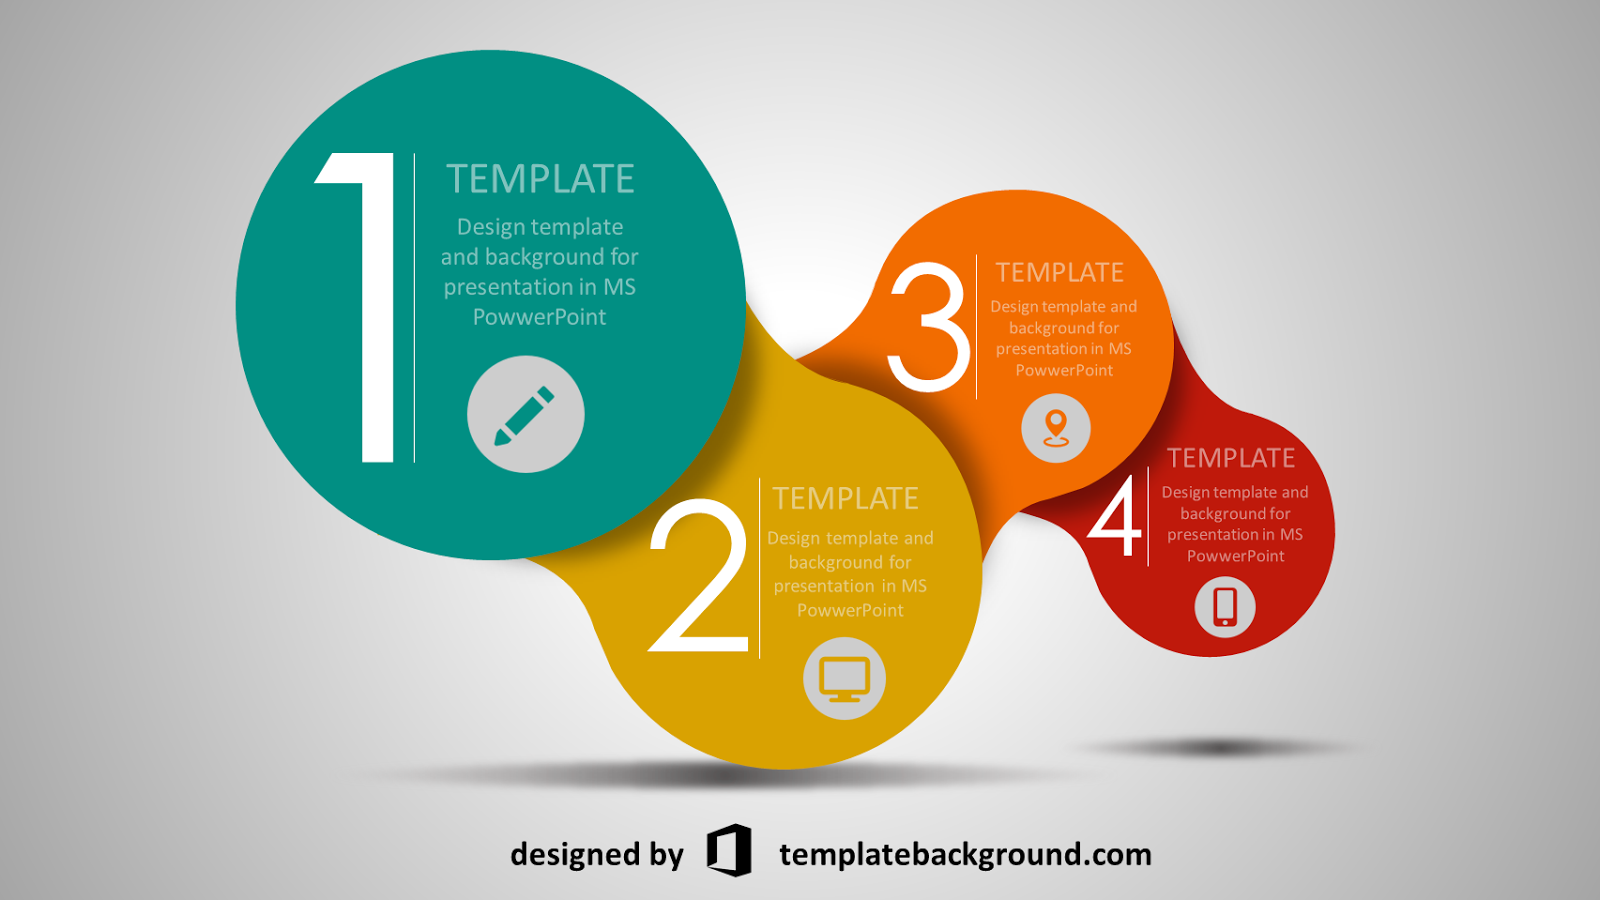 ppt templates free download - animated png for ppt free download transparent animated